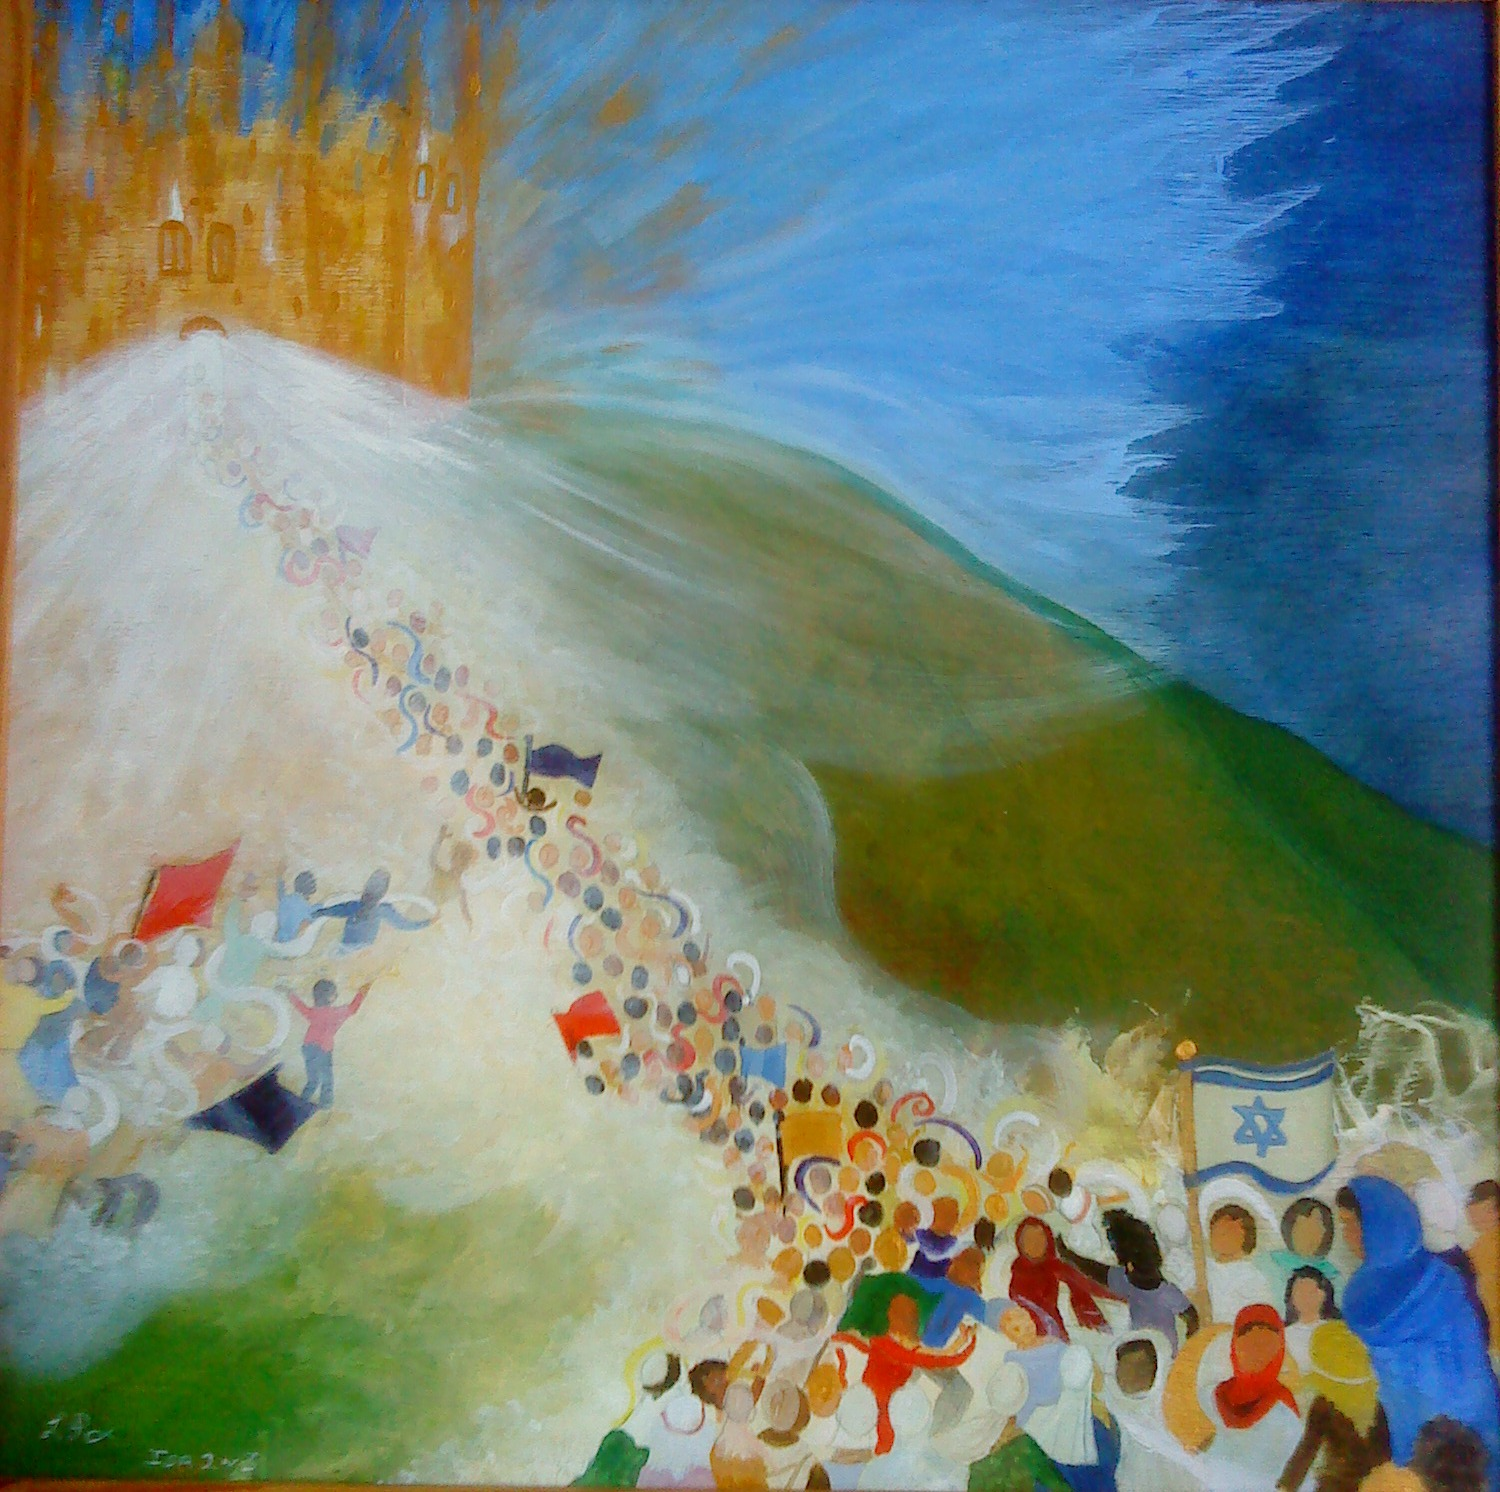 In the last days the mountain of the lord s temple will be